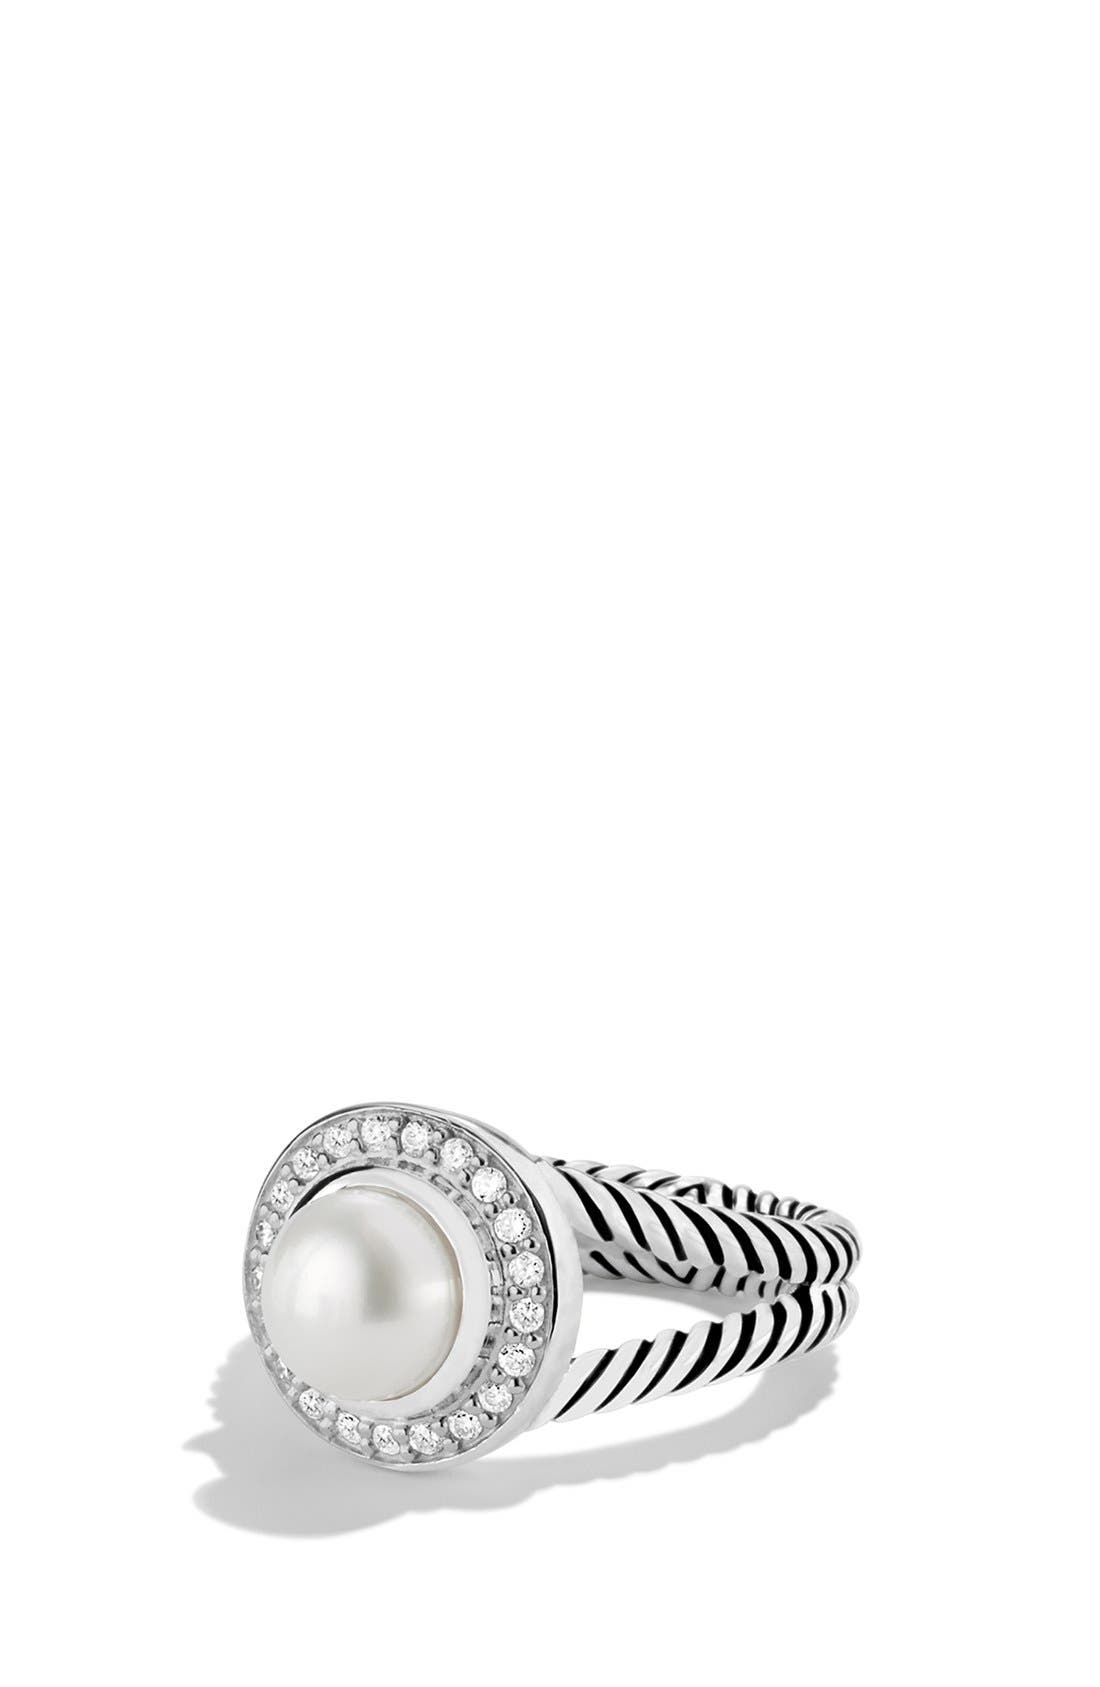 Alternate Image 1 Selected - David Yurman 'Petite Cerise' Ring with Pearl and Diamonds